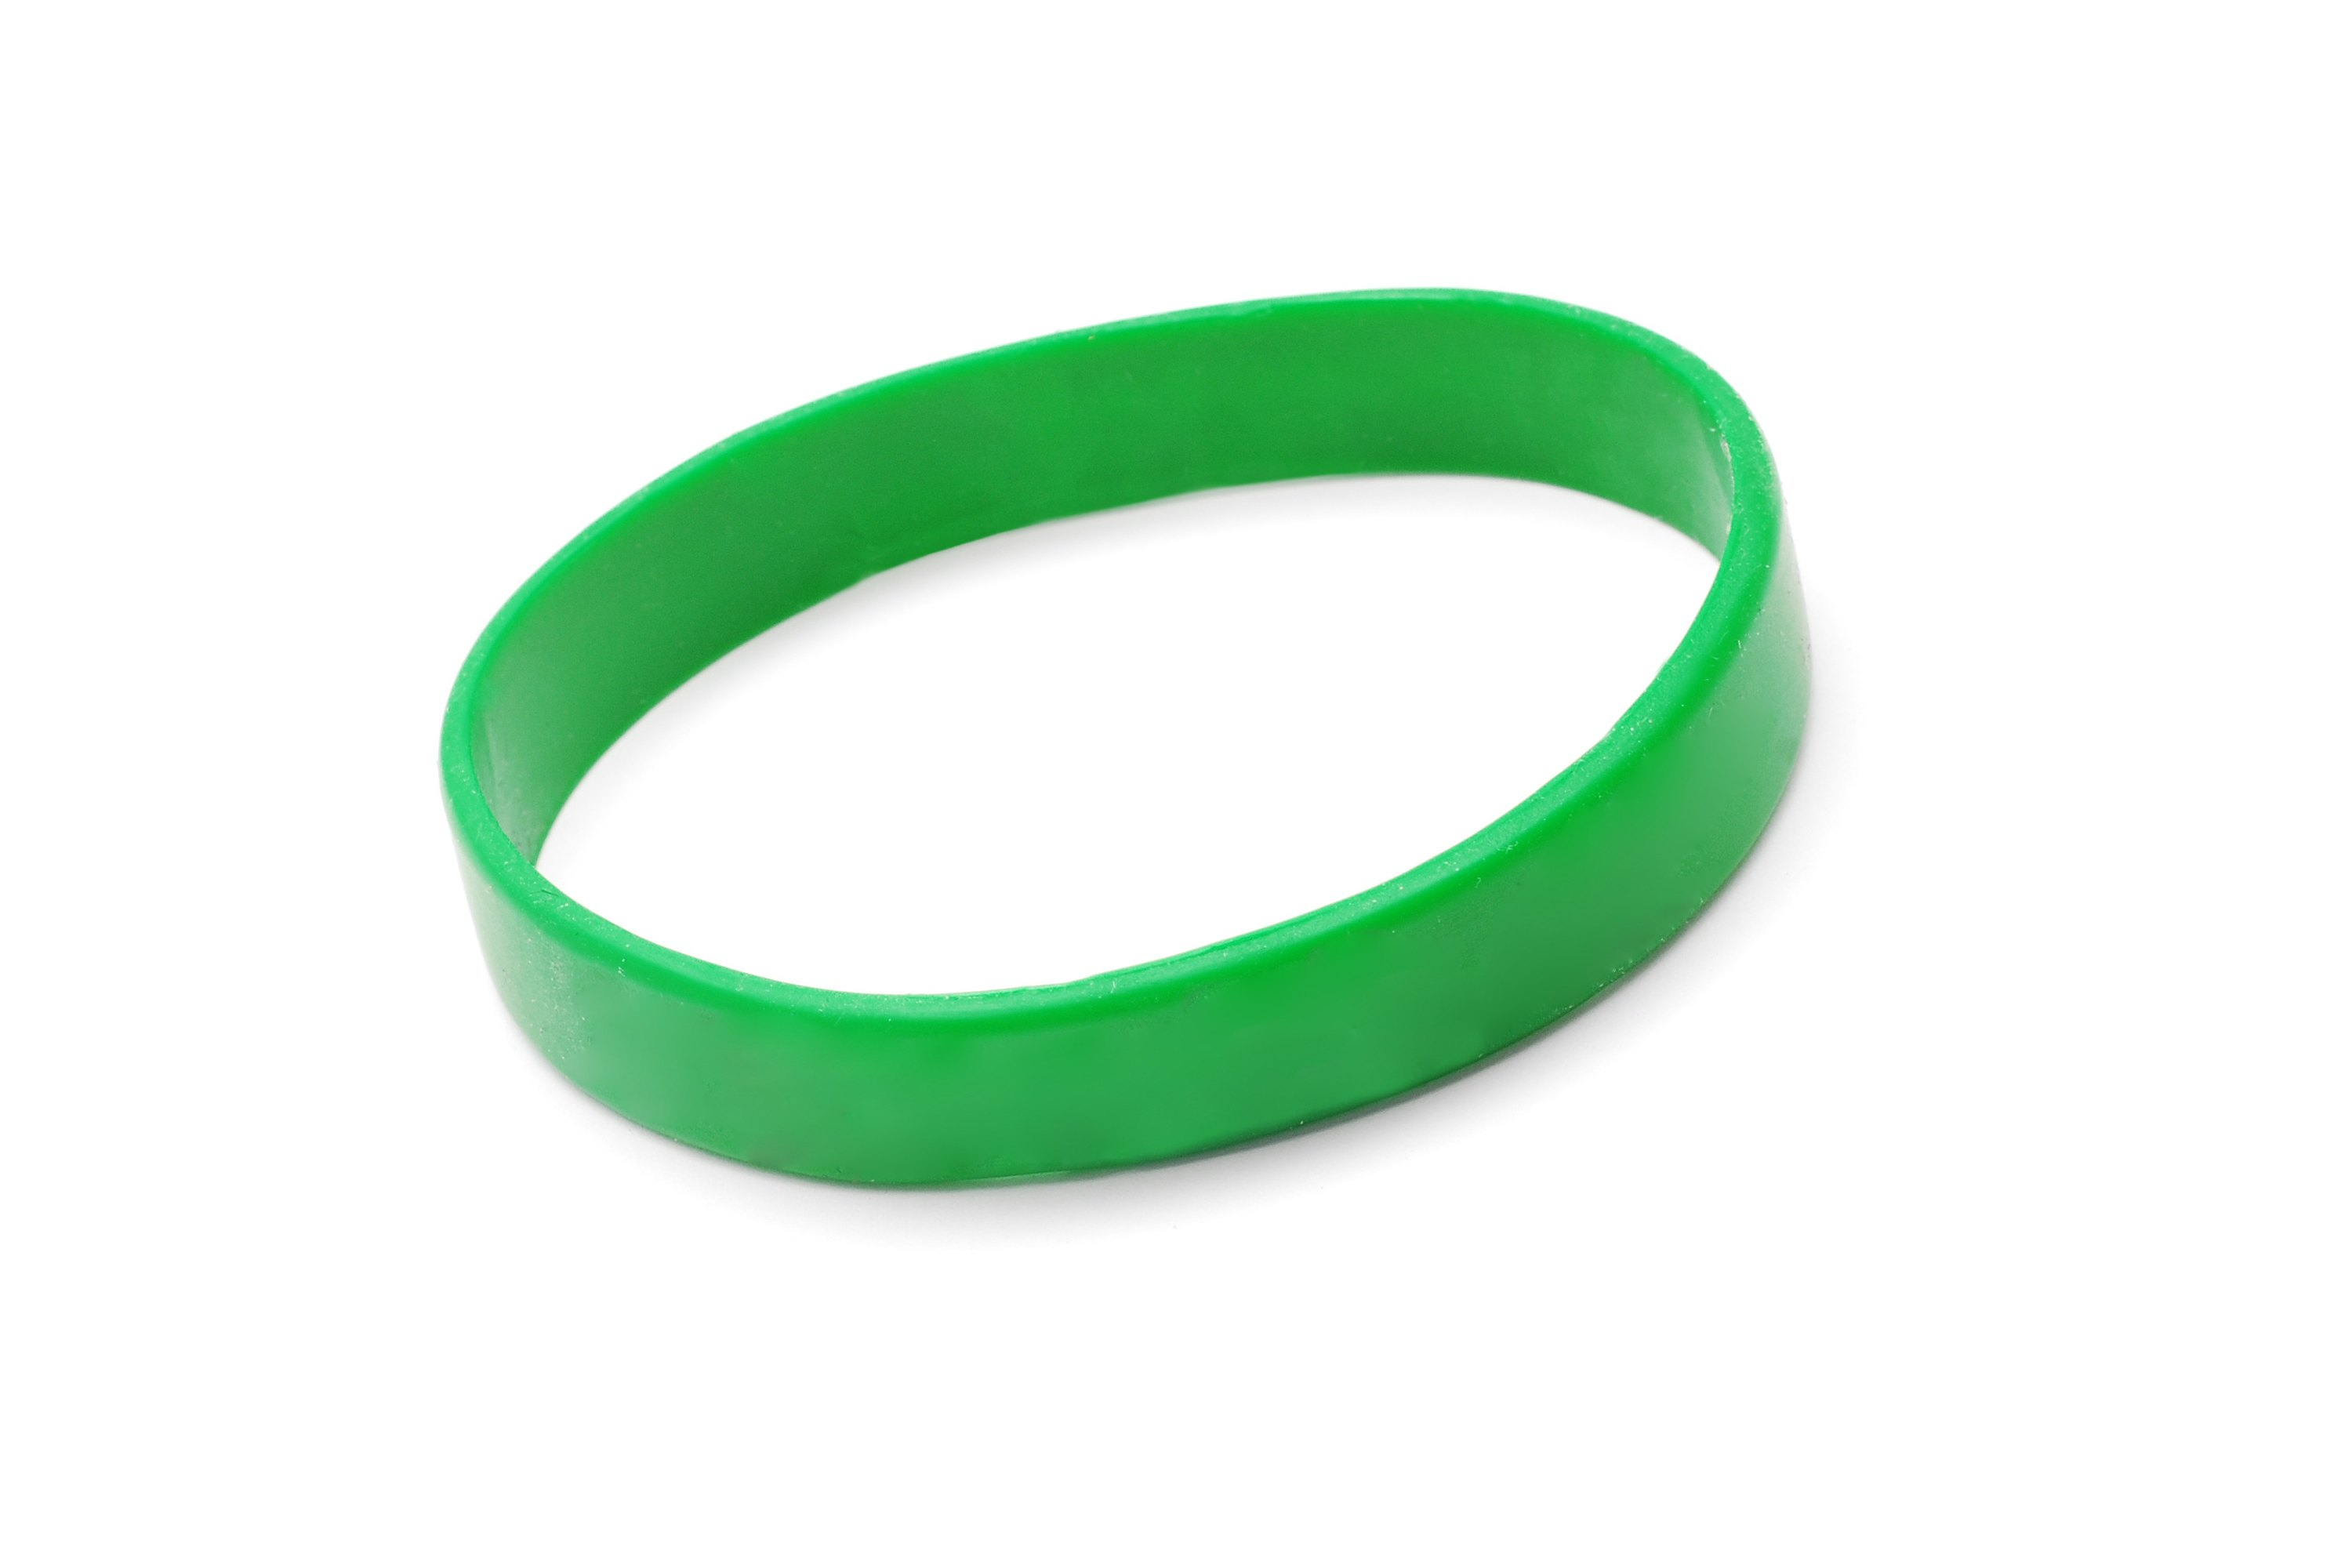 custom green band blank spectrum led light branded bands glow the dark up banded products wristband merchandising wrist in bracelet